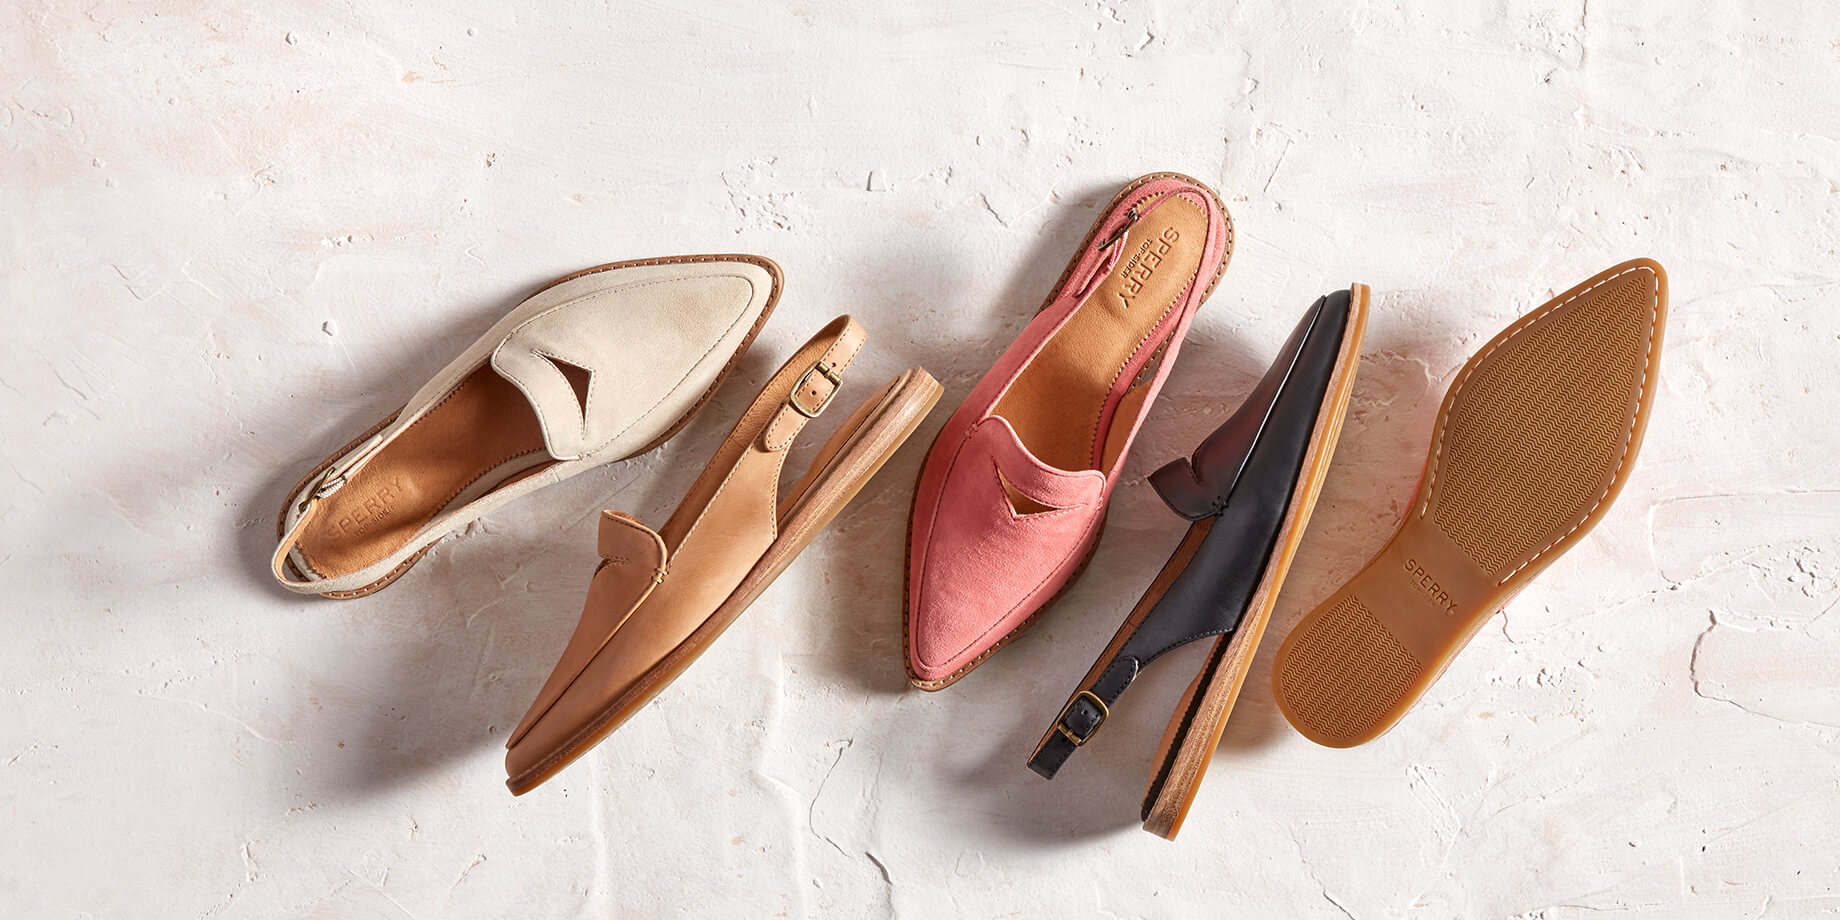 Saybrook Slingback in a variety of colors.